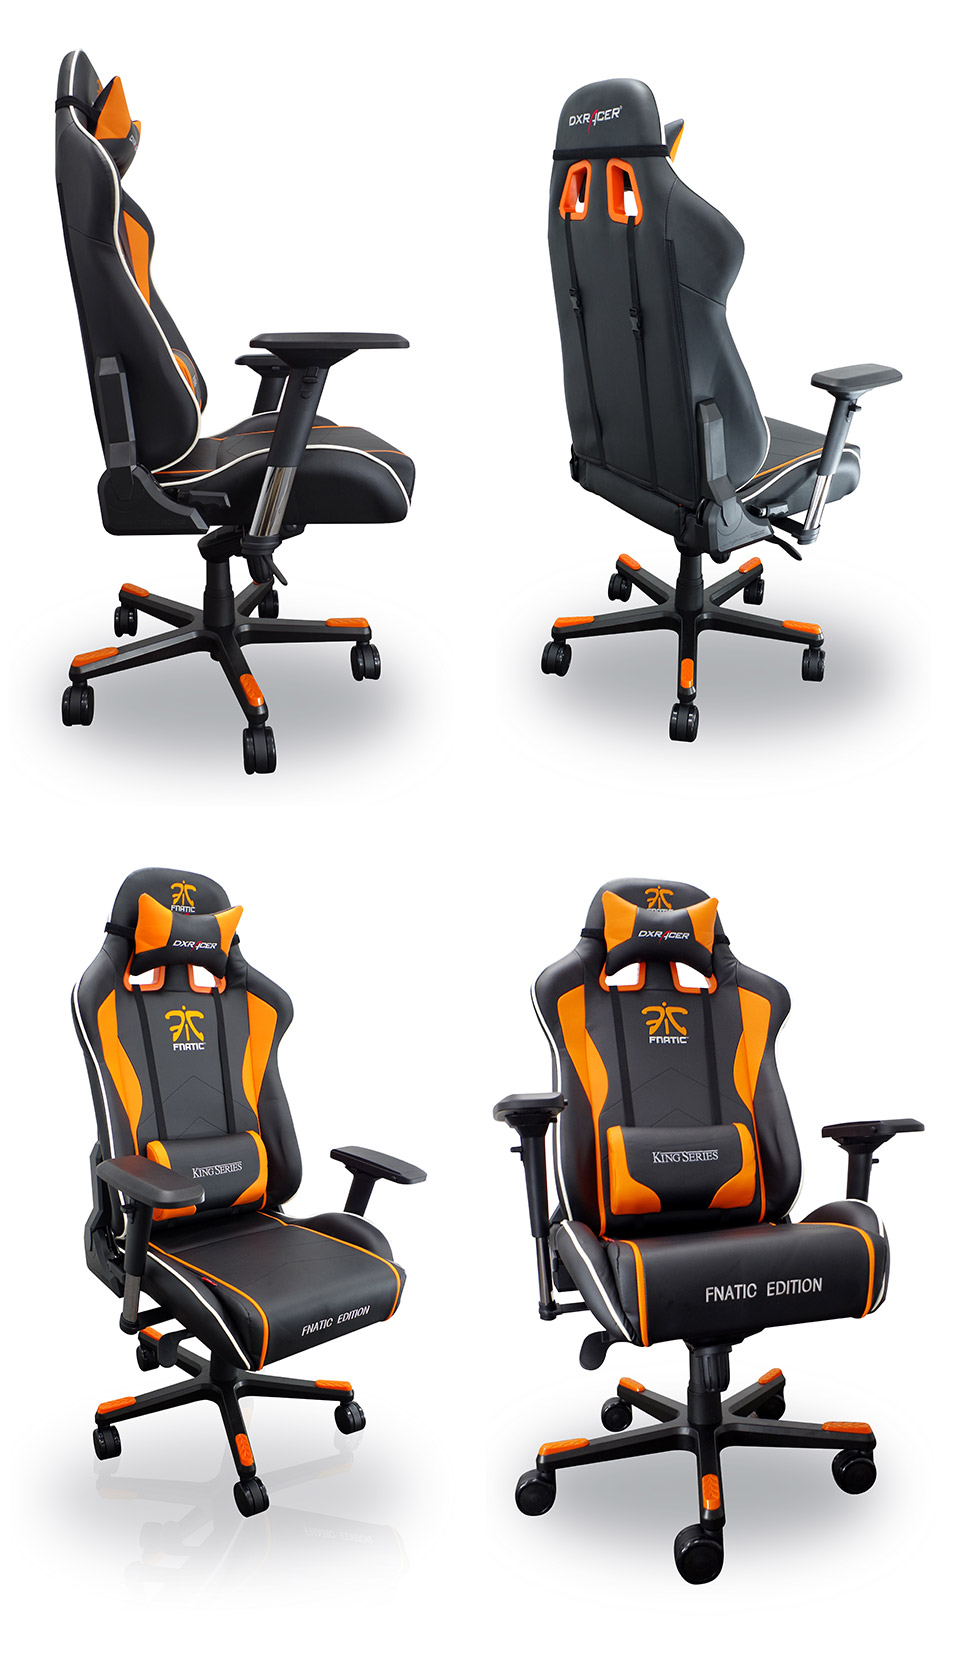 Awe Inspiring Dxracer K Series Pc Office Gaming Chair Fnatic Edition Dxr Theyellowbook Wood Chair Design Ideas Theyellowbookinfo